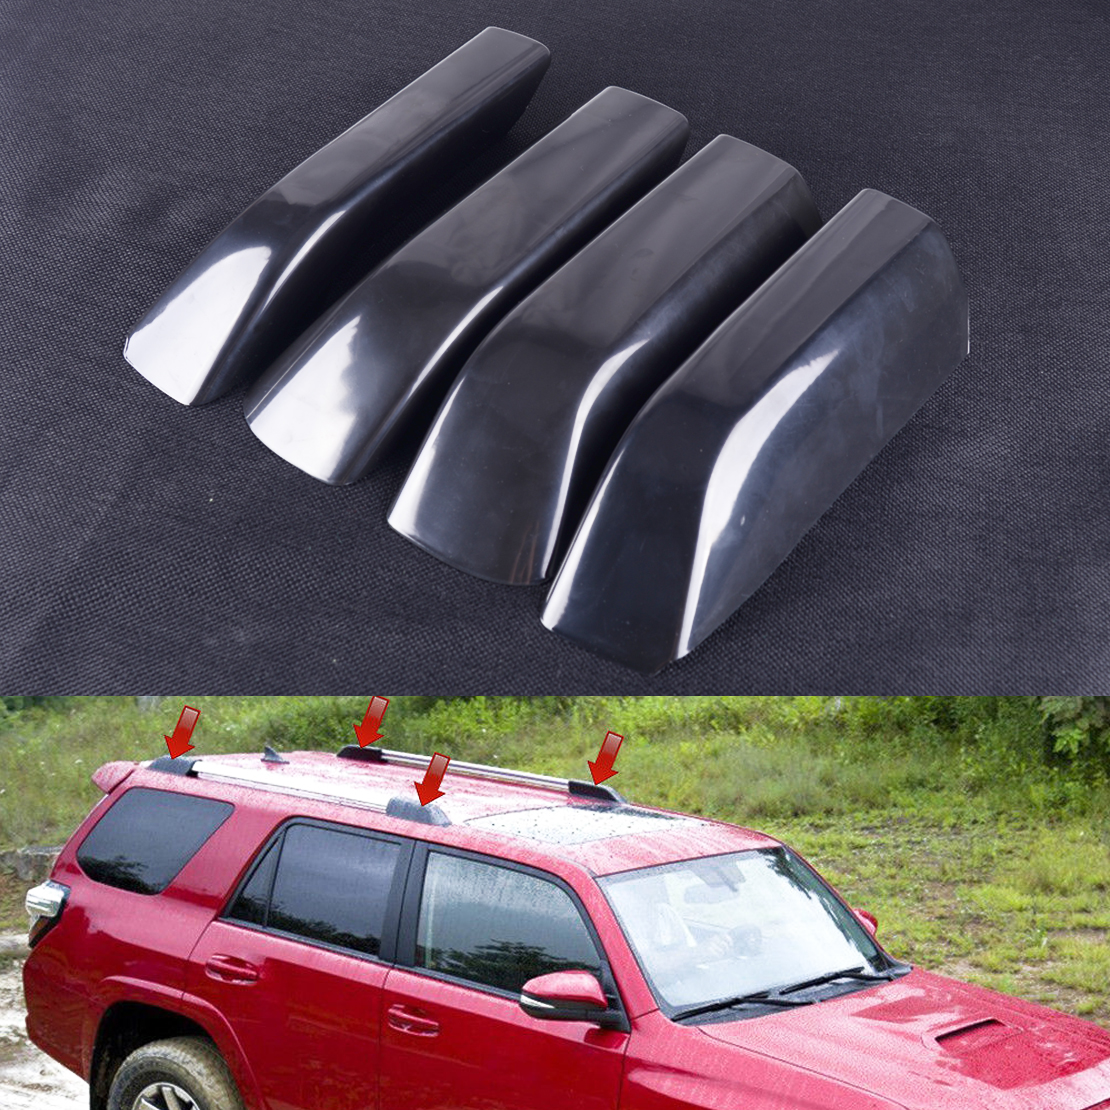 DWCX 4PCS ABS Roof Luggage Rack Rail End Cover Shell fit for Toyota <font><b>4Runner</b></font> N280 <font><b>2010</b></font> 2011 2012 2013 2014 2015 2016 2017 2018 image